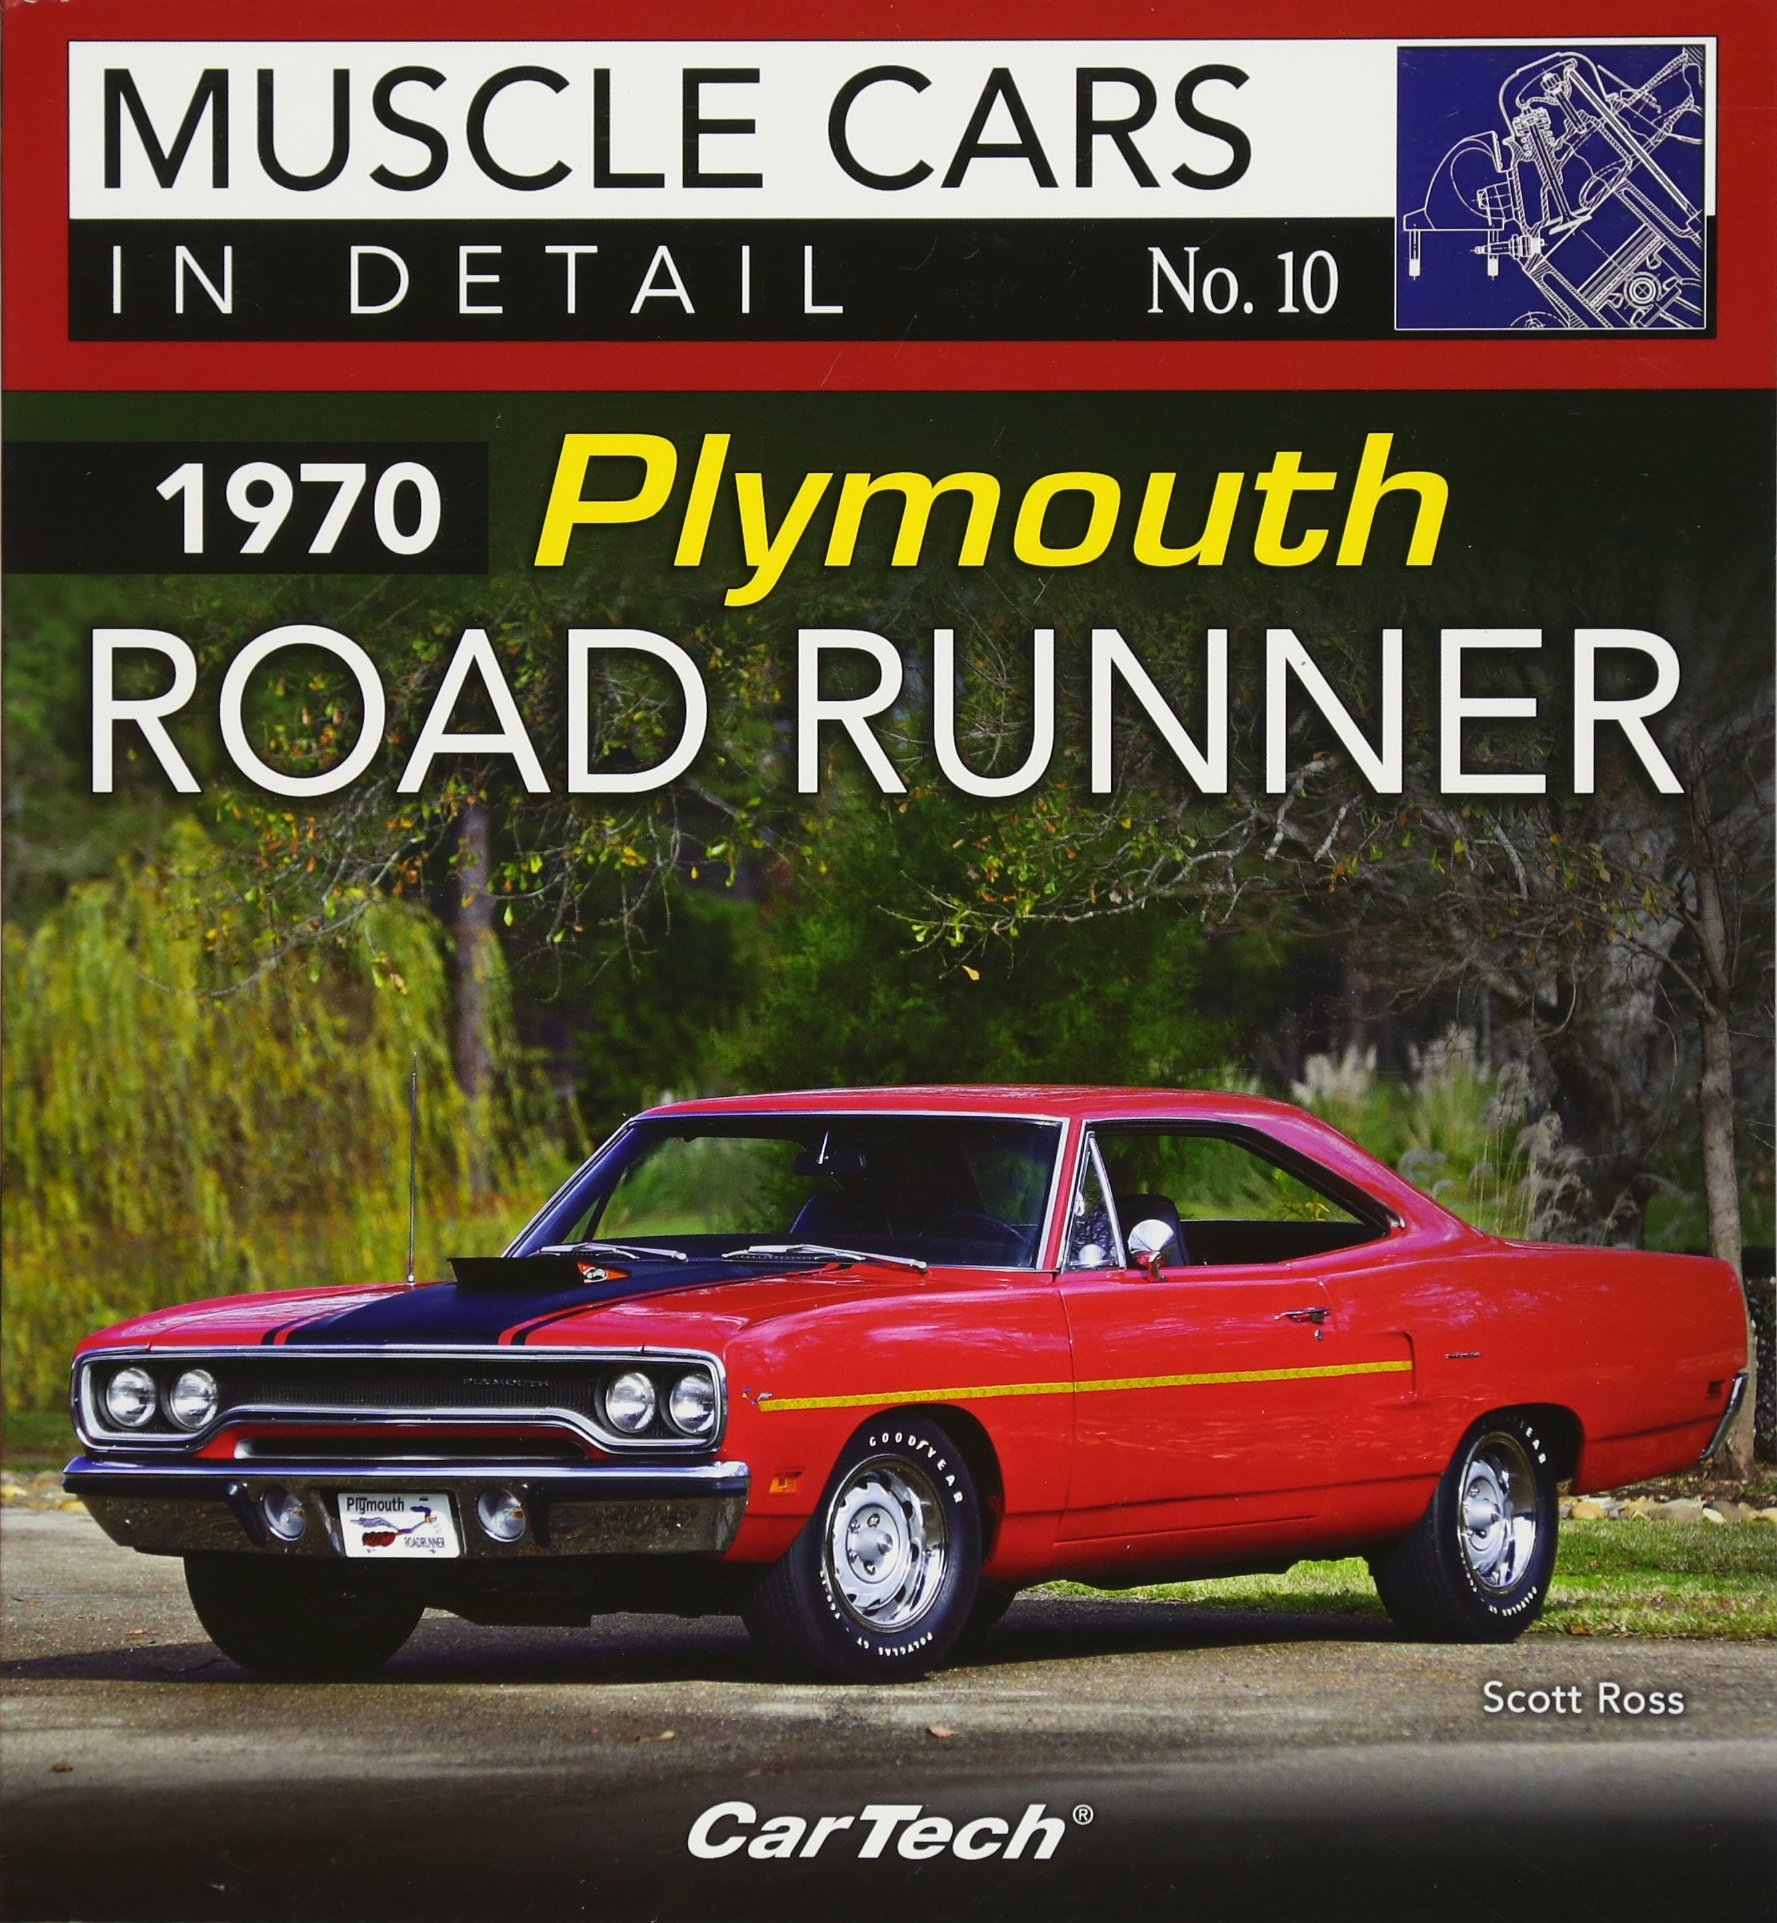 1970 Plymouth Road Runner: Muscle Cars In Detail No. 10: Scott Ross ...